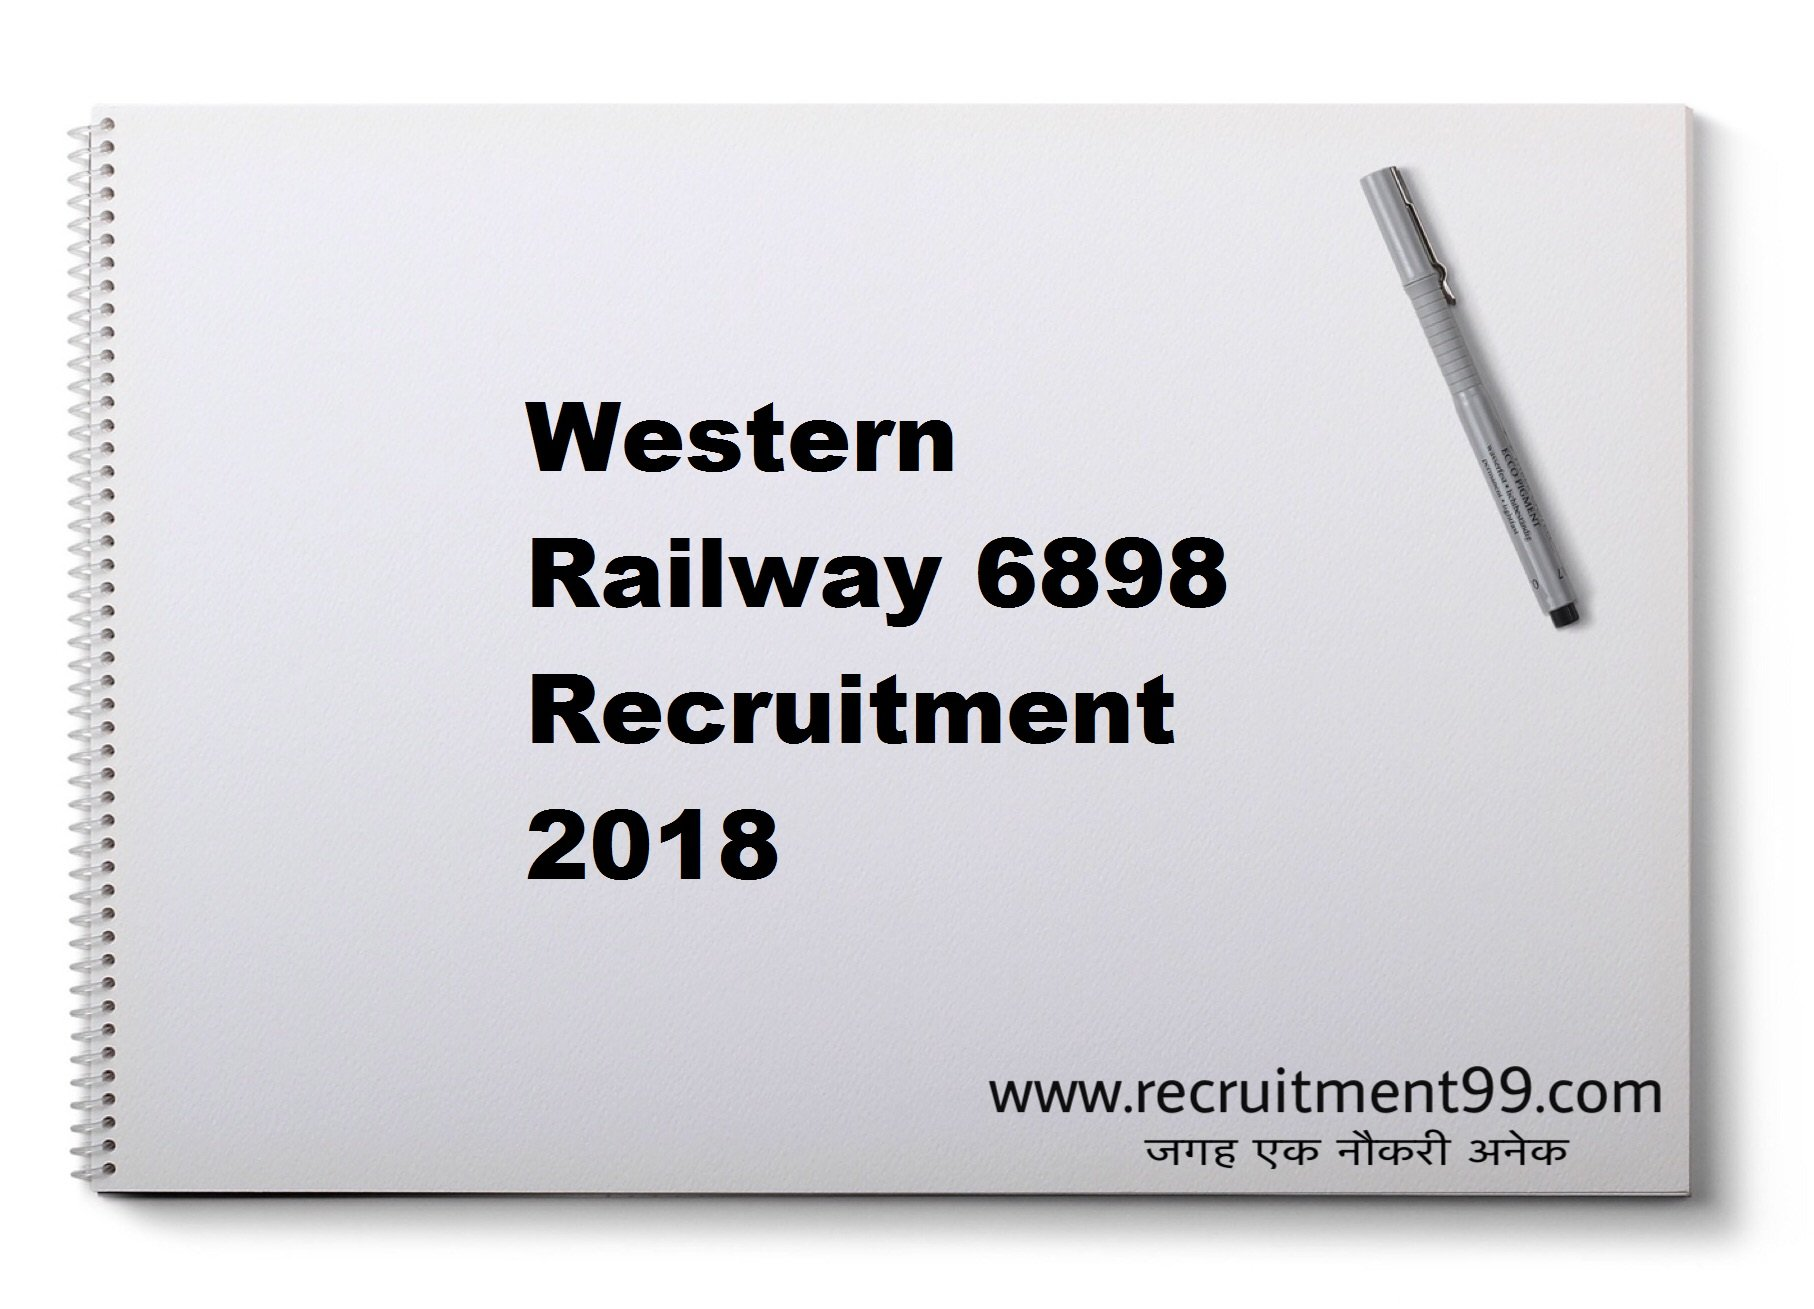 Western Railway 6898 Recruitment Admit Card Interview Result 2018